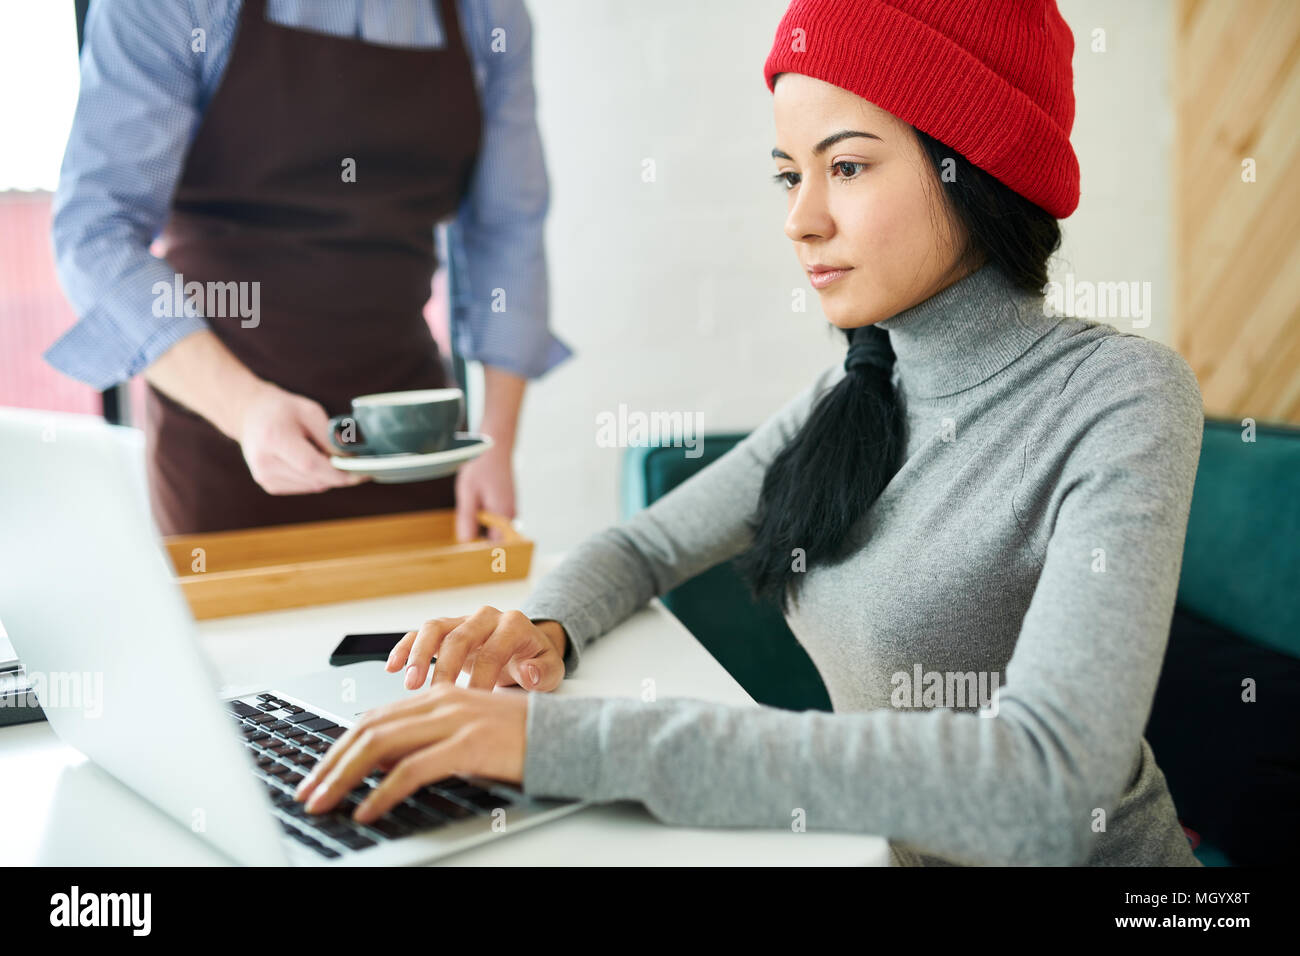 Modern Young Woman Using laptop in Cafe - Stock Image